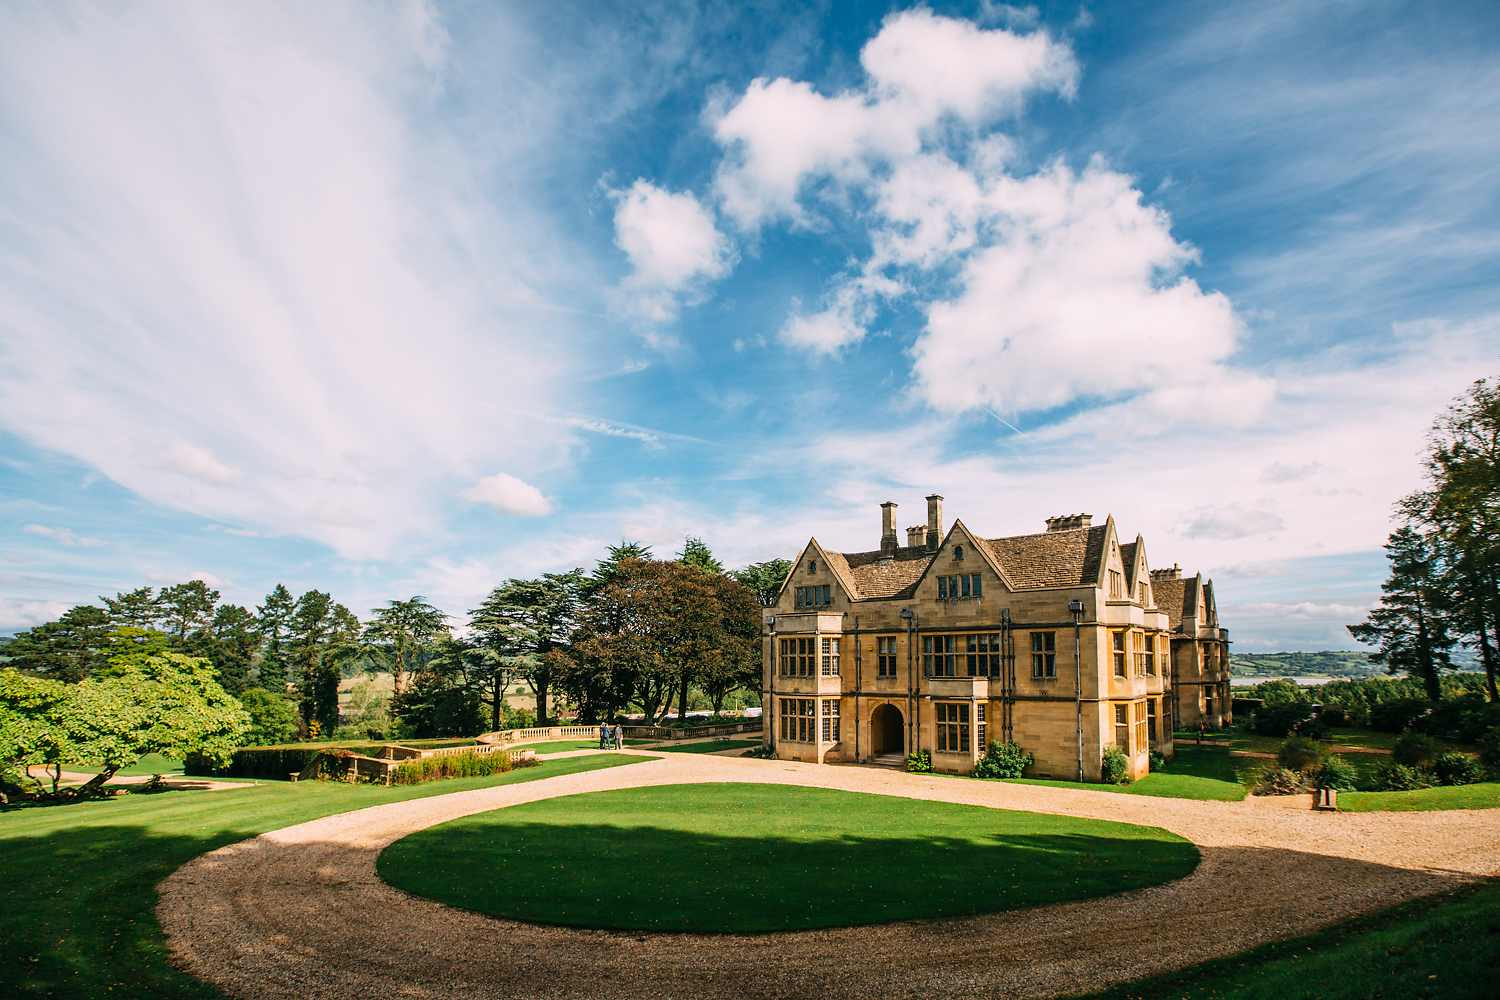 photograph of Coombe Lodge in the sunshine